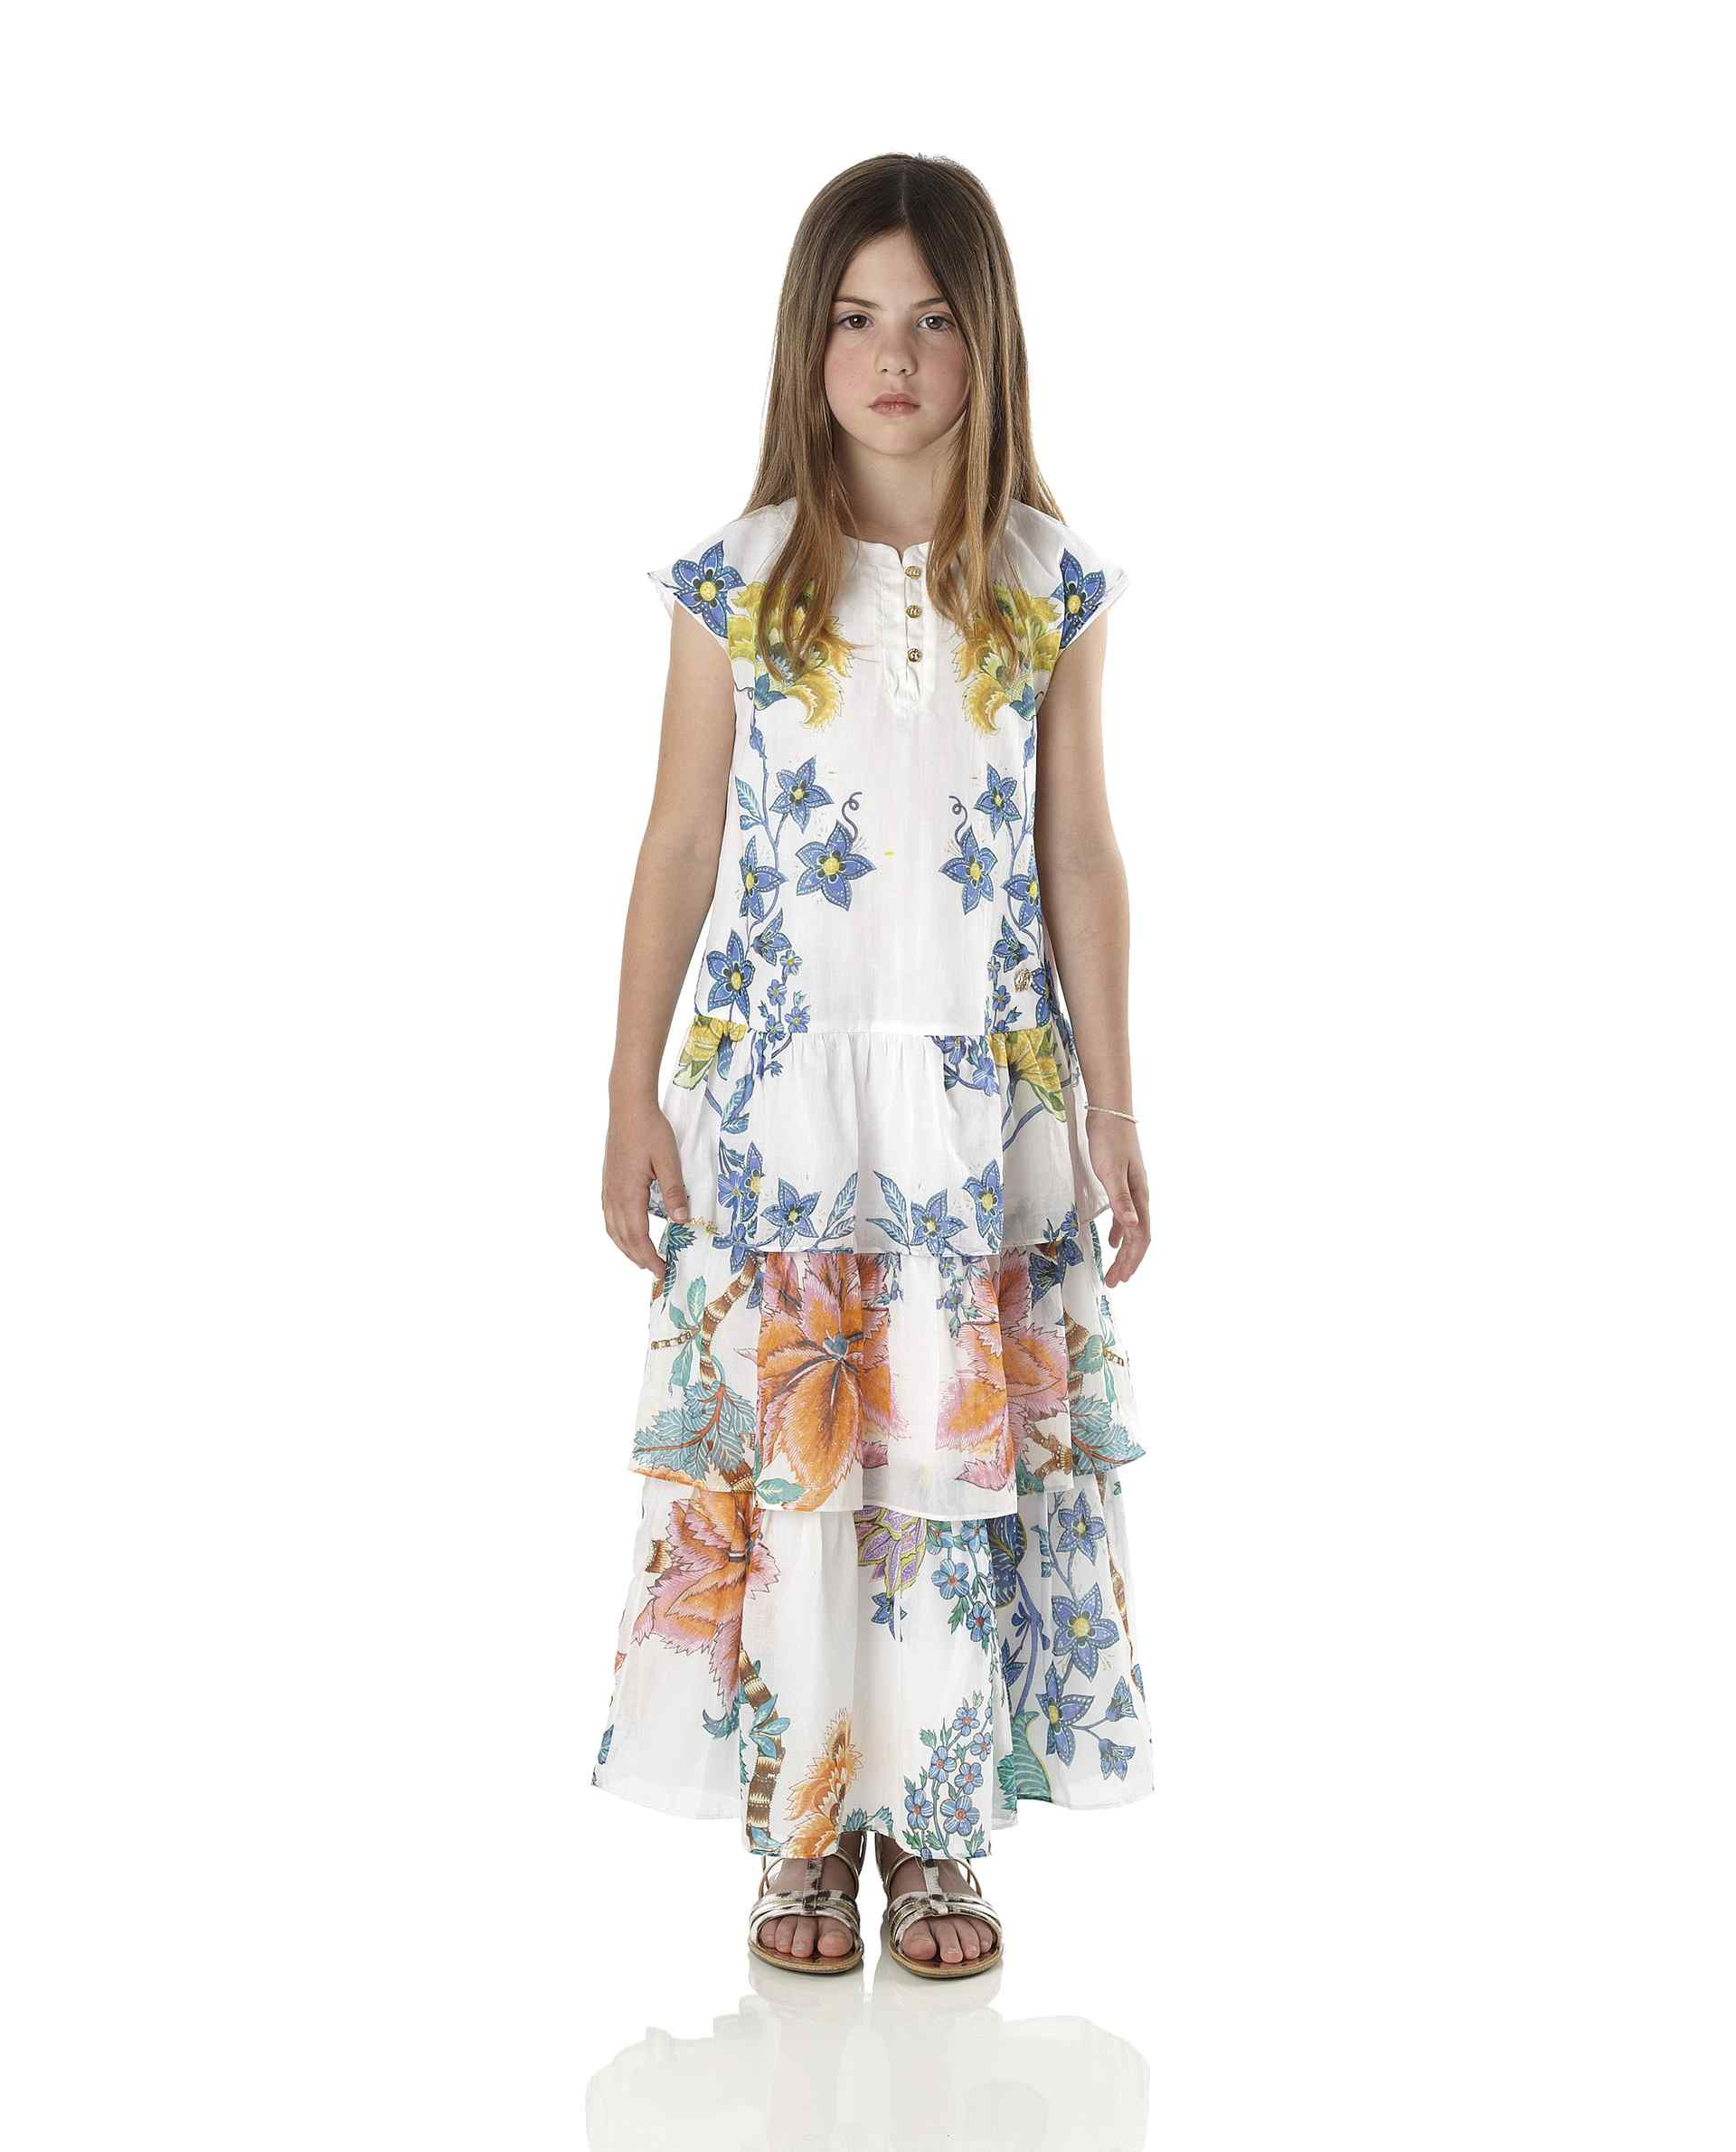 Jr Summer Dresses